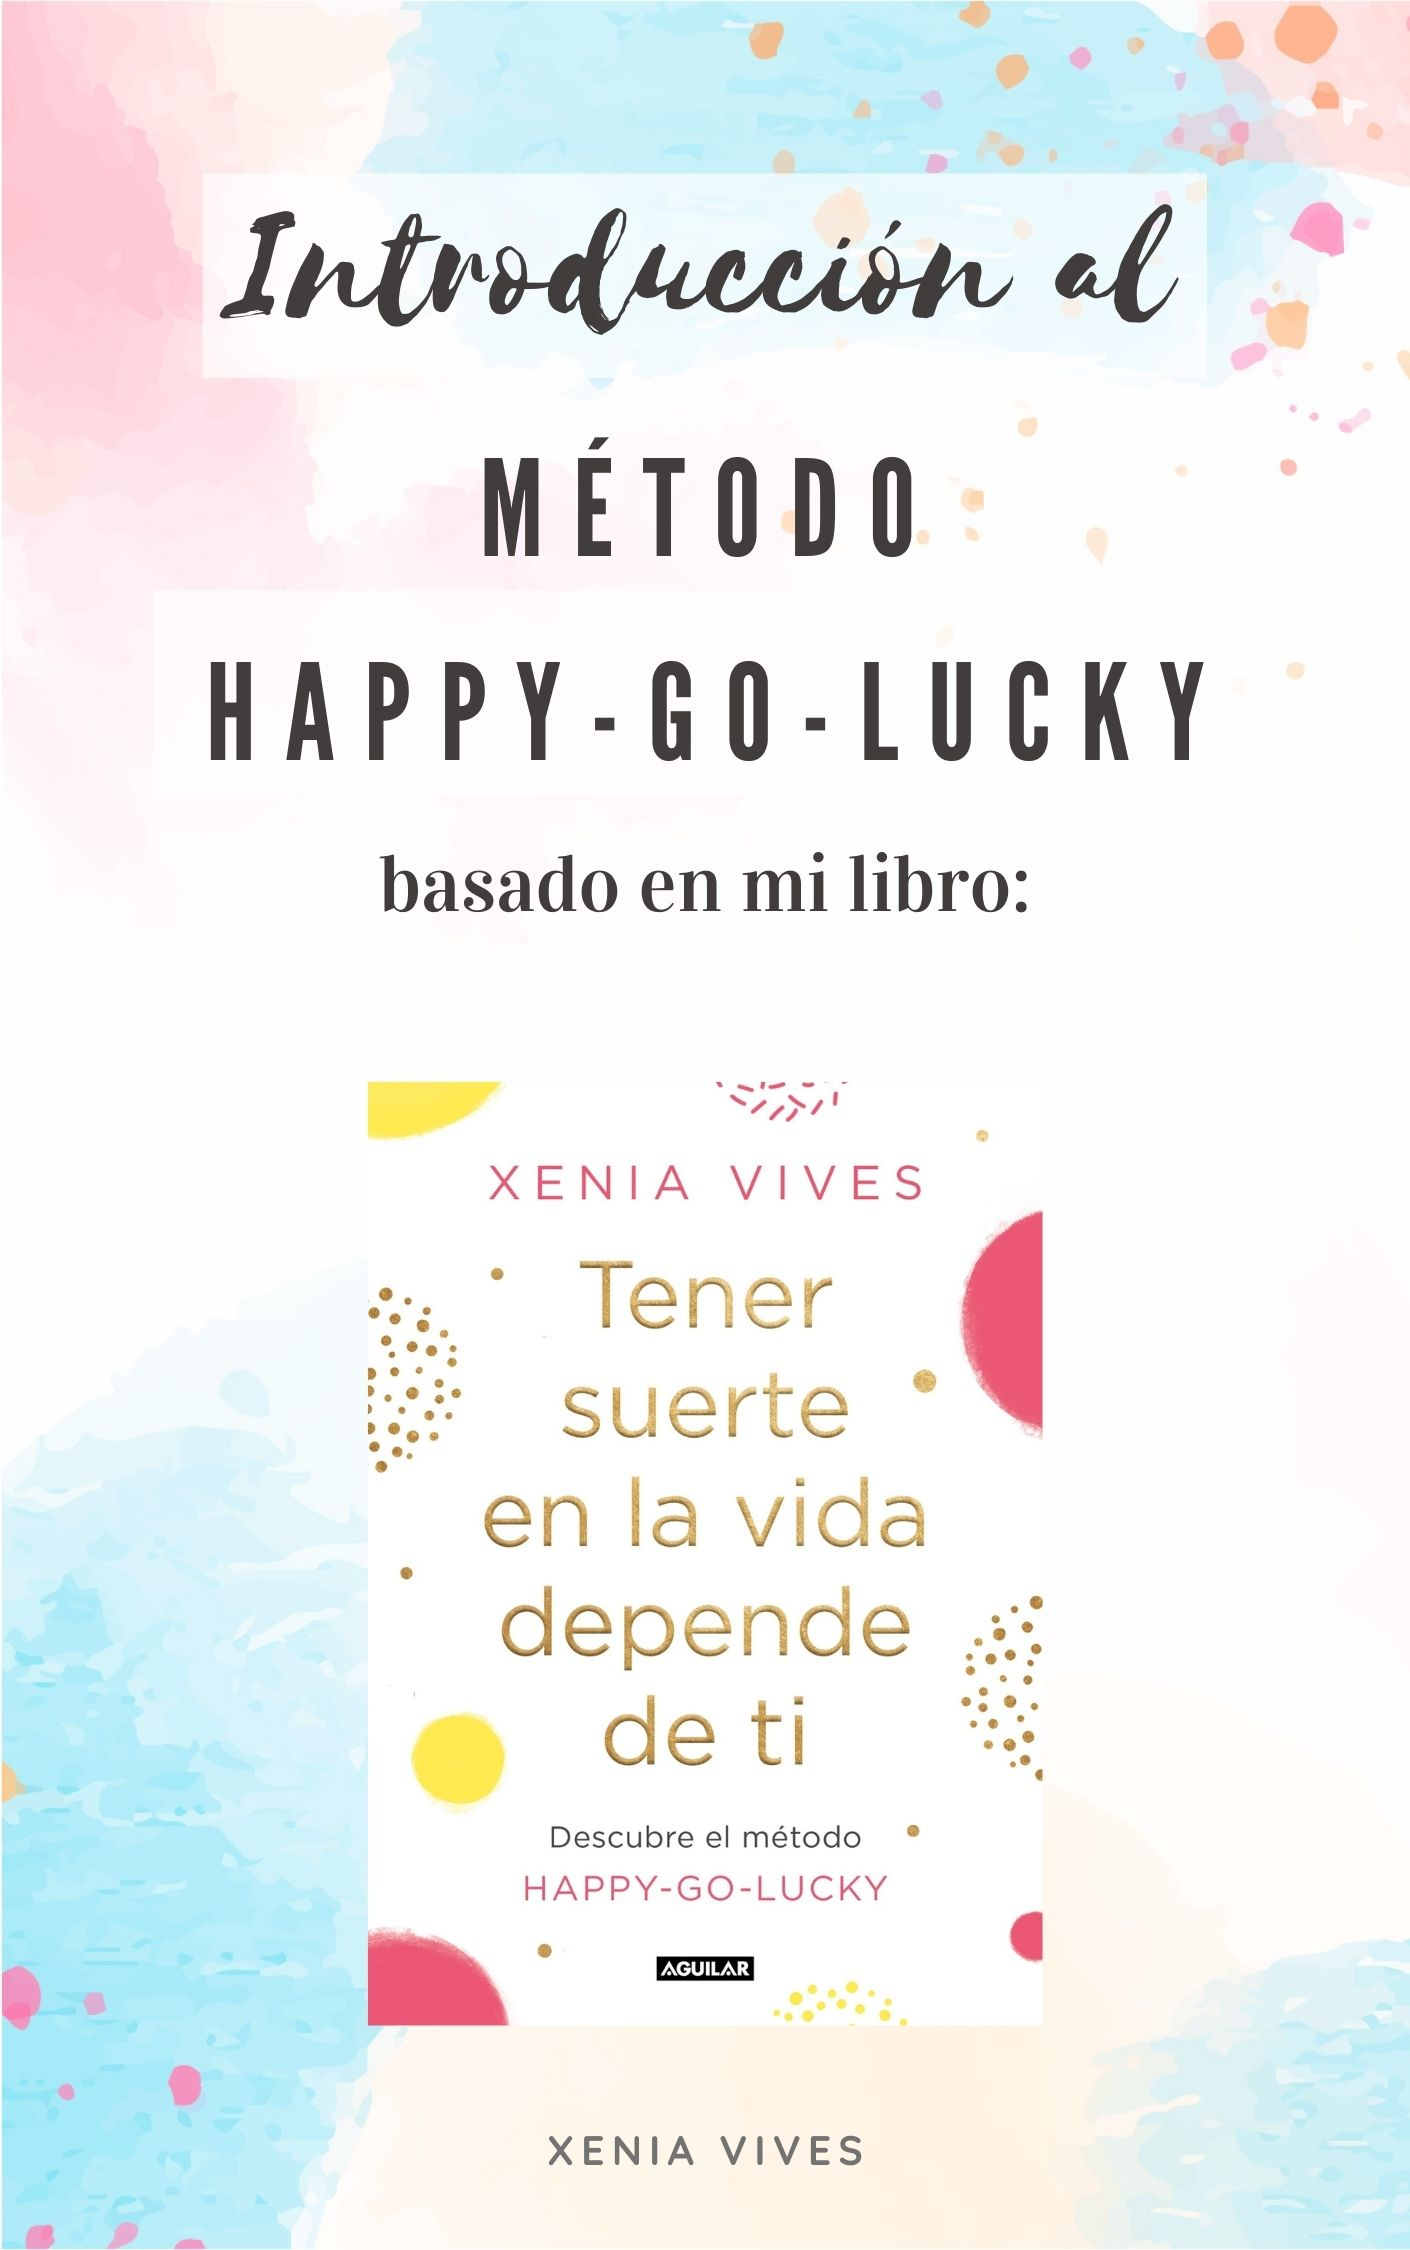 Método Happy-Go-Lucky